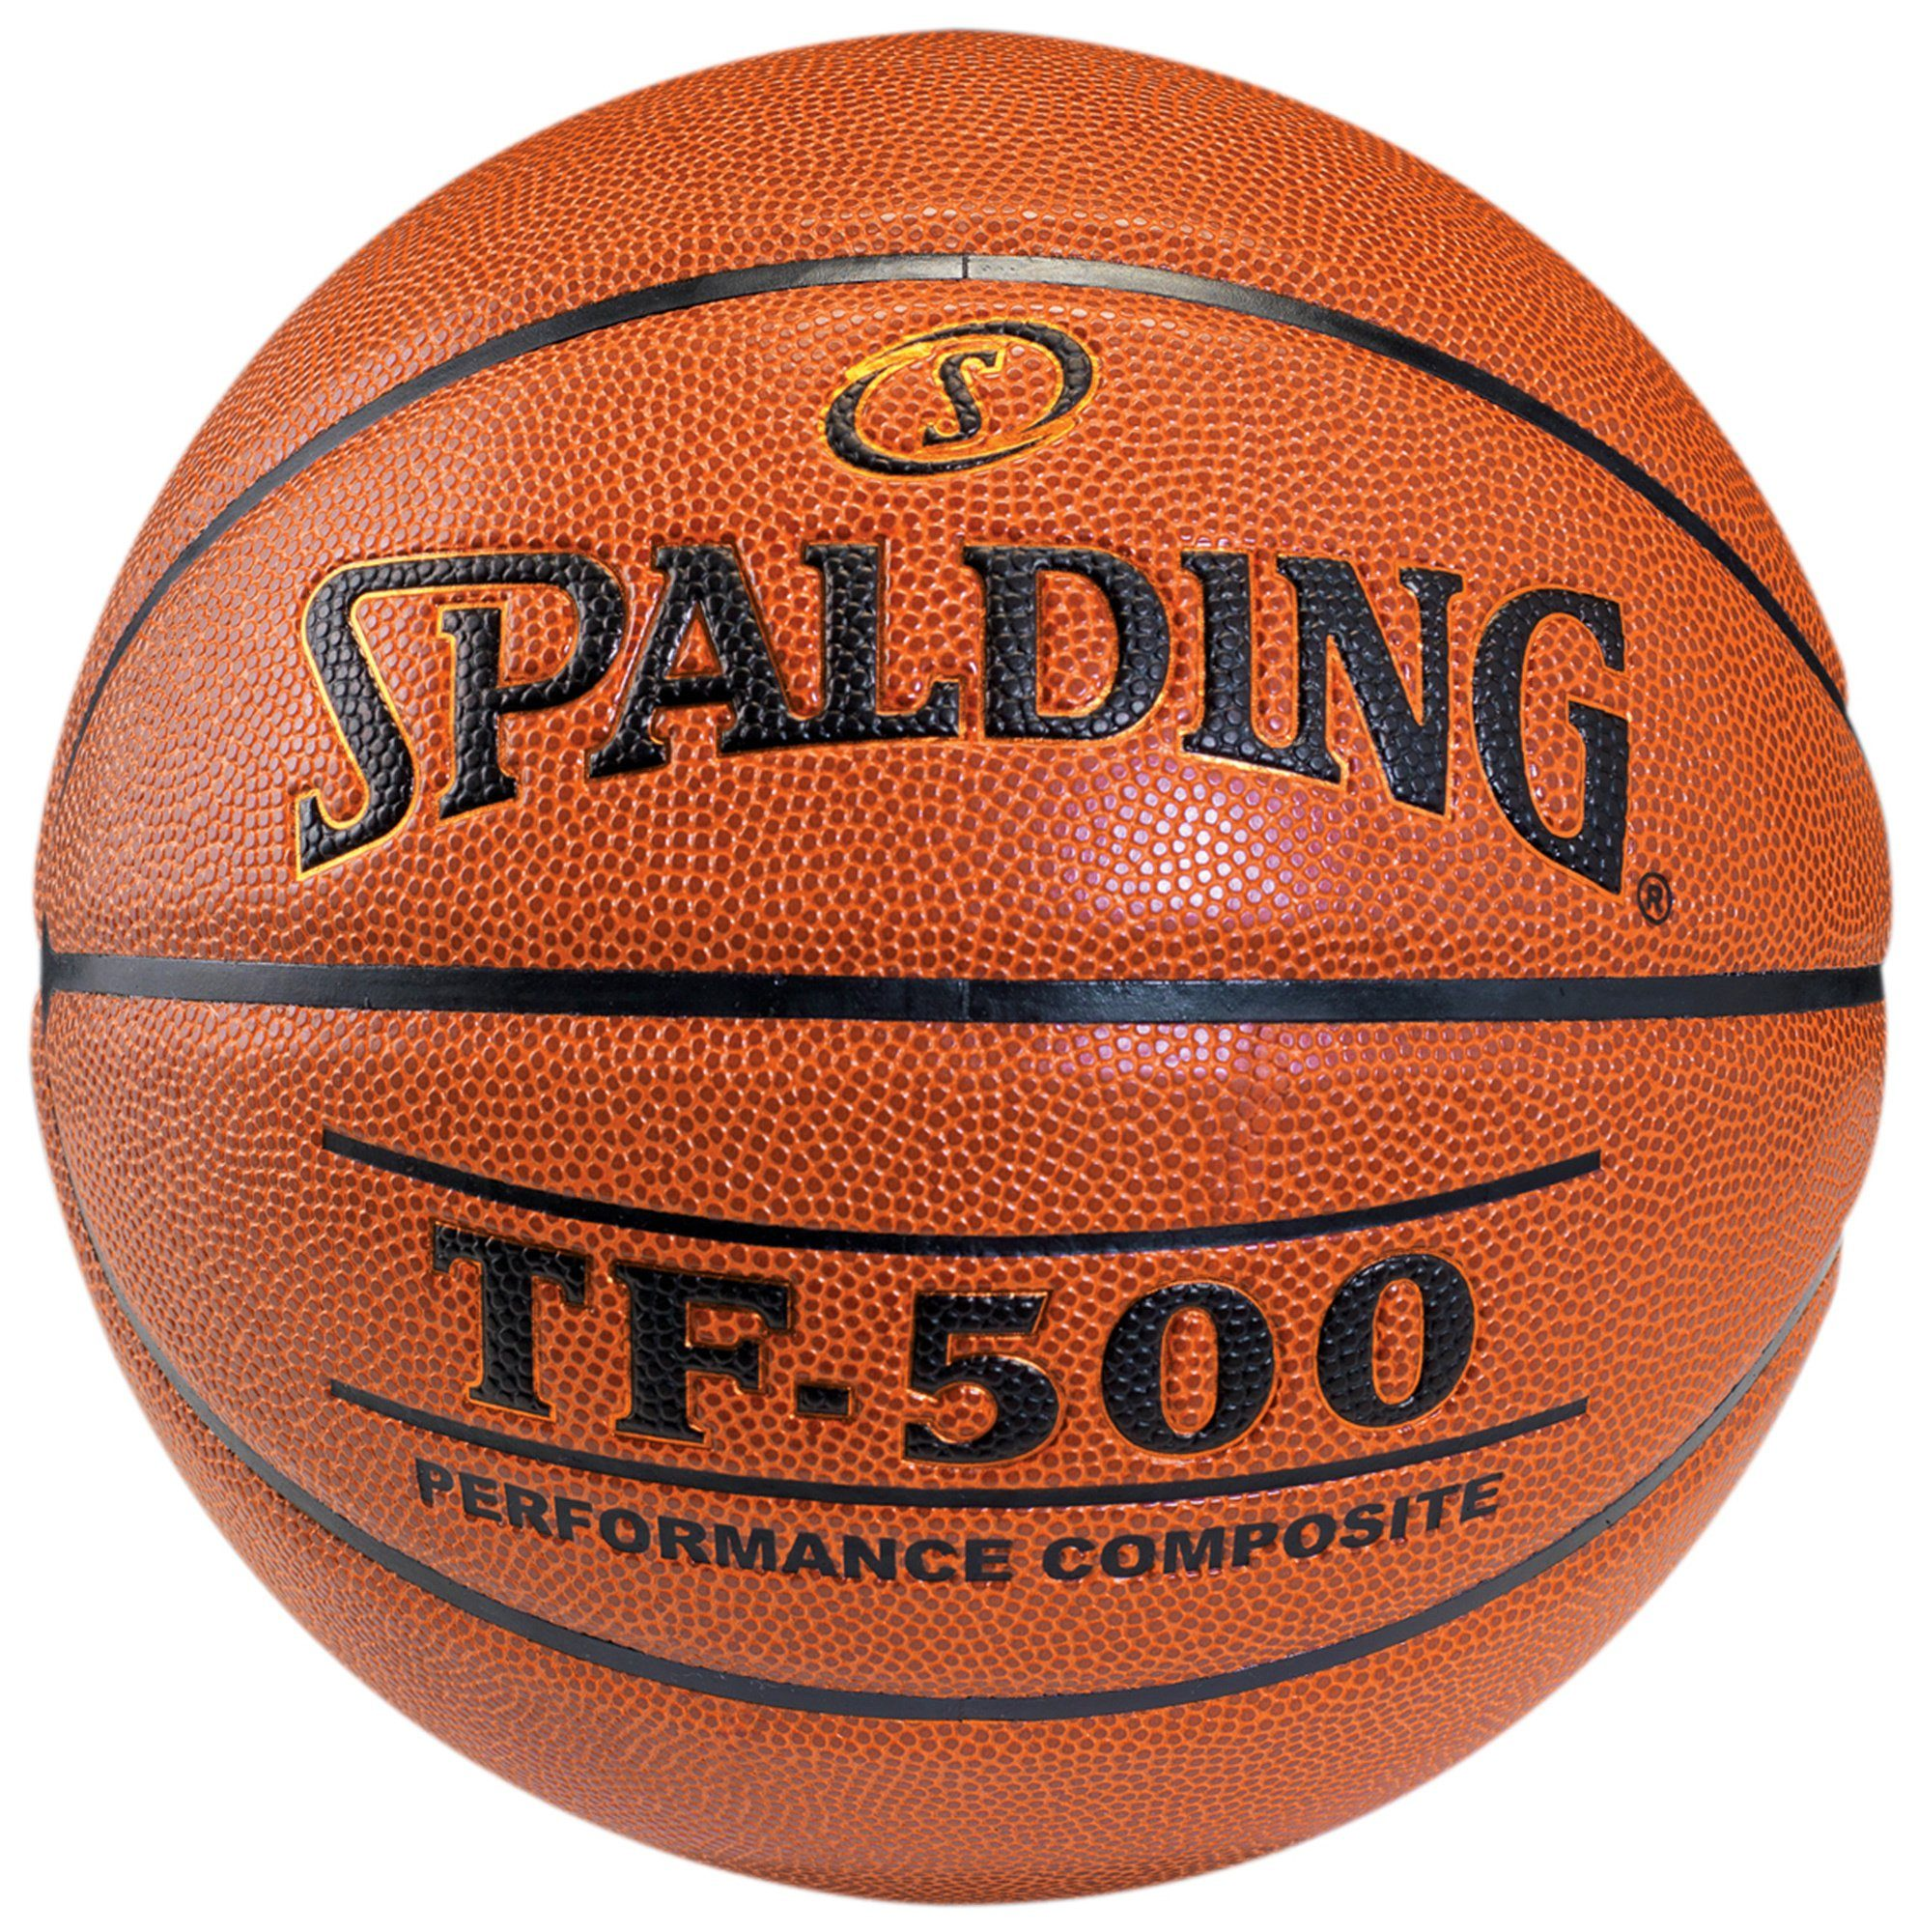 SPALDING TF500 Indoor Basketball